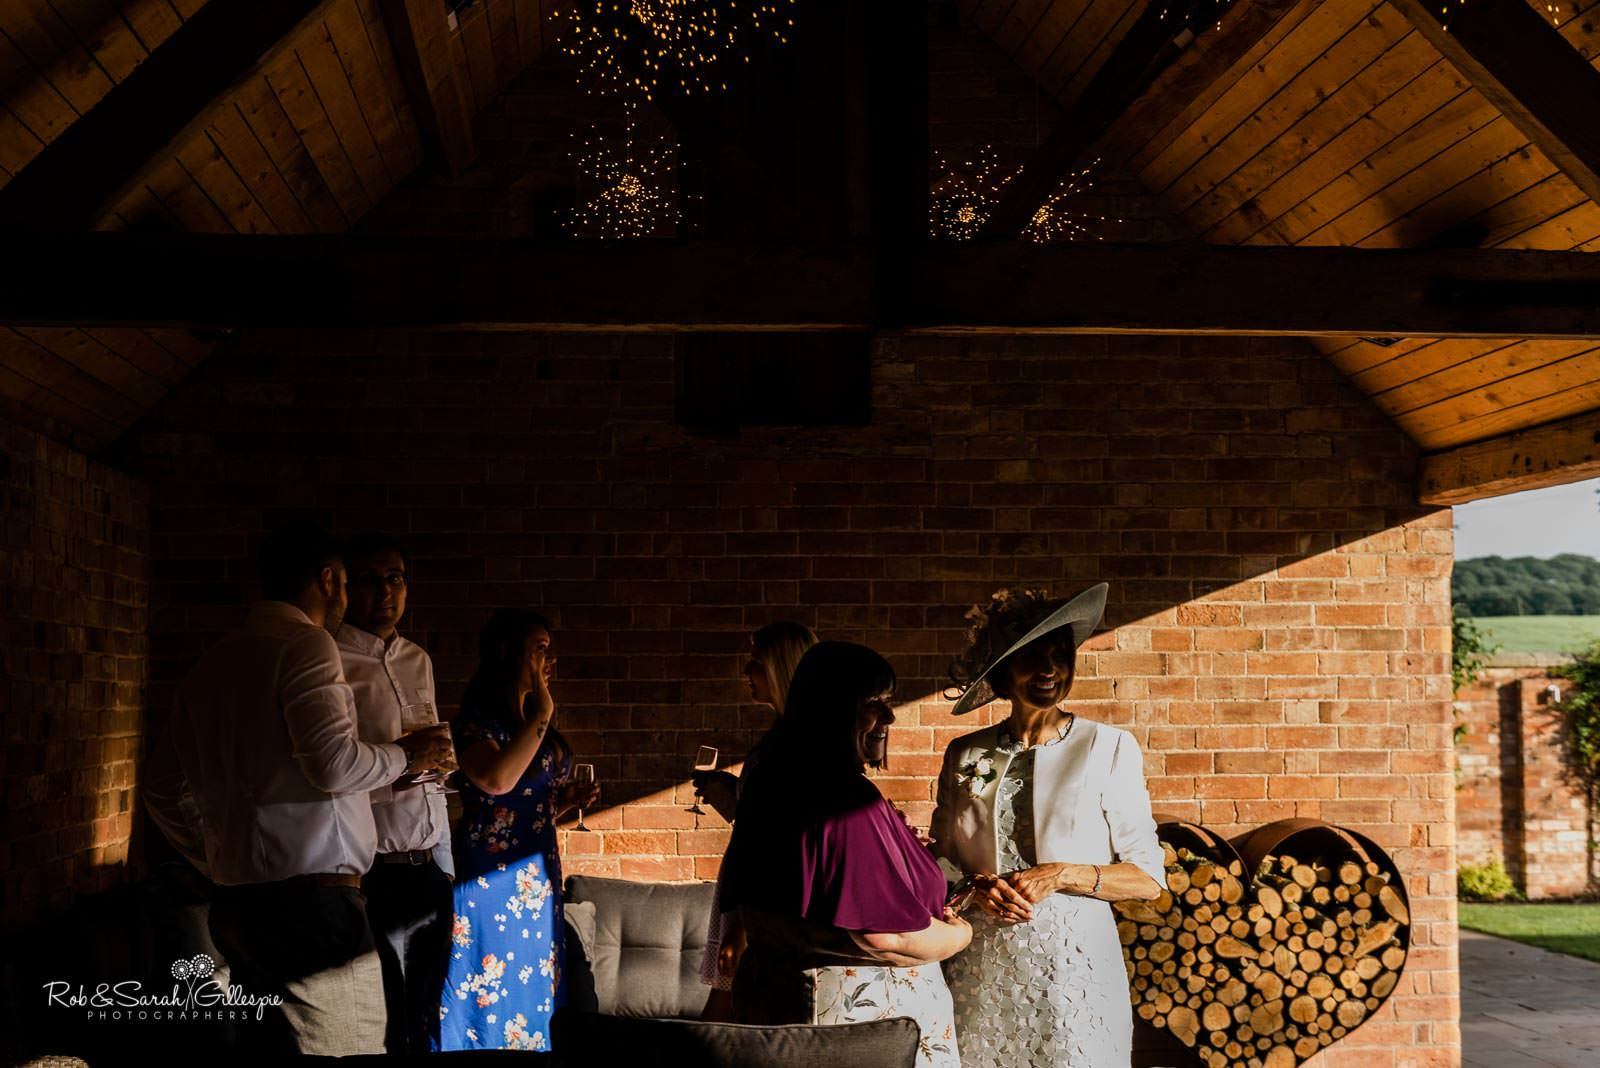 Wedding guests in evening light at Swallows Nest Barn